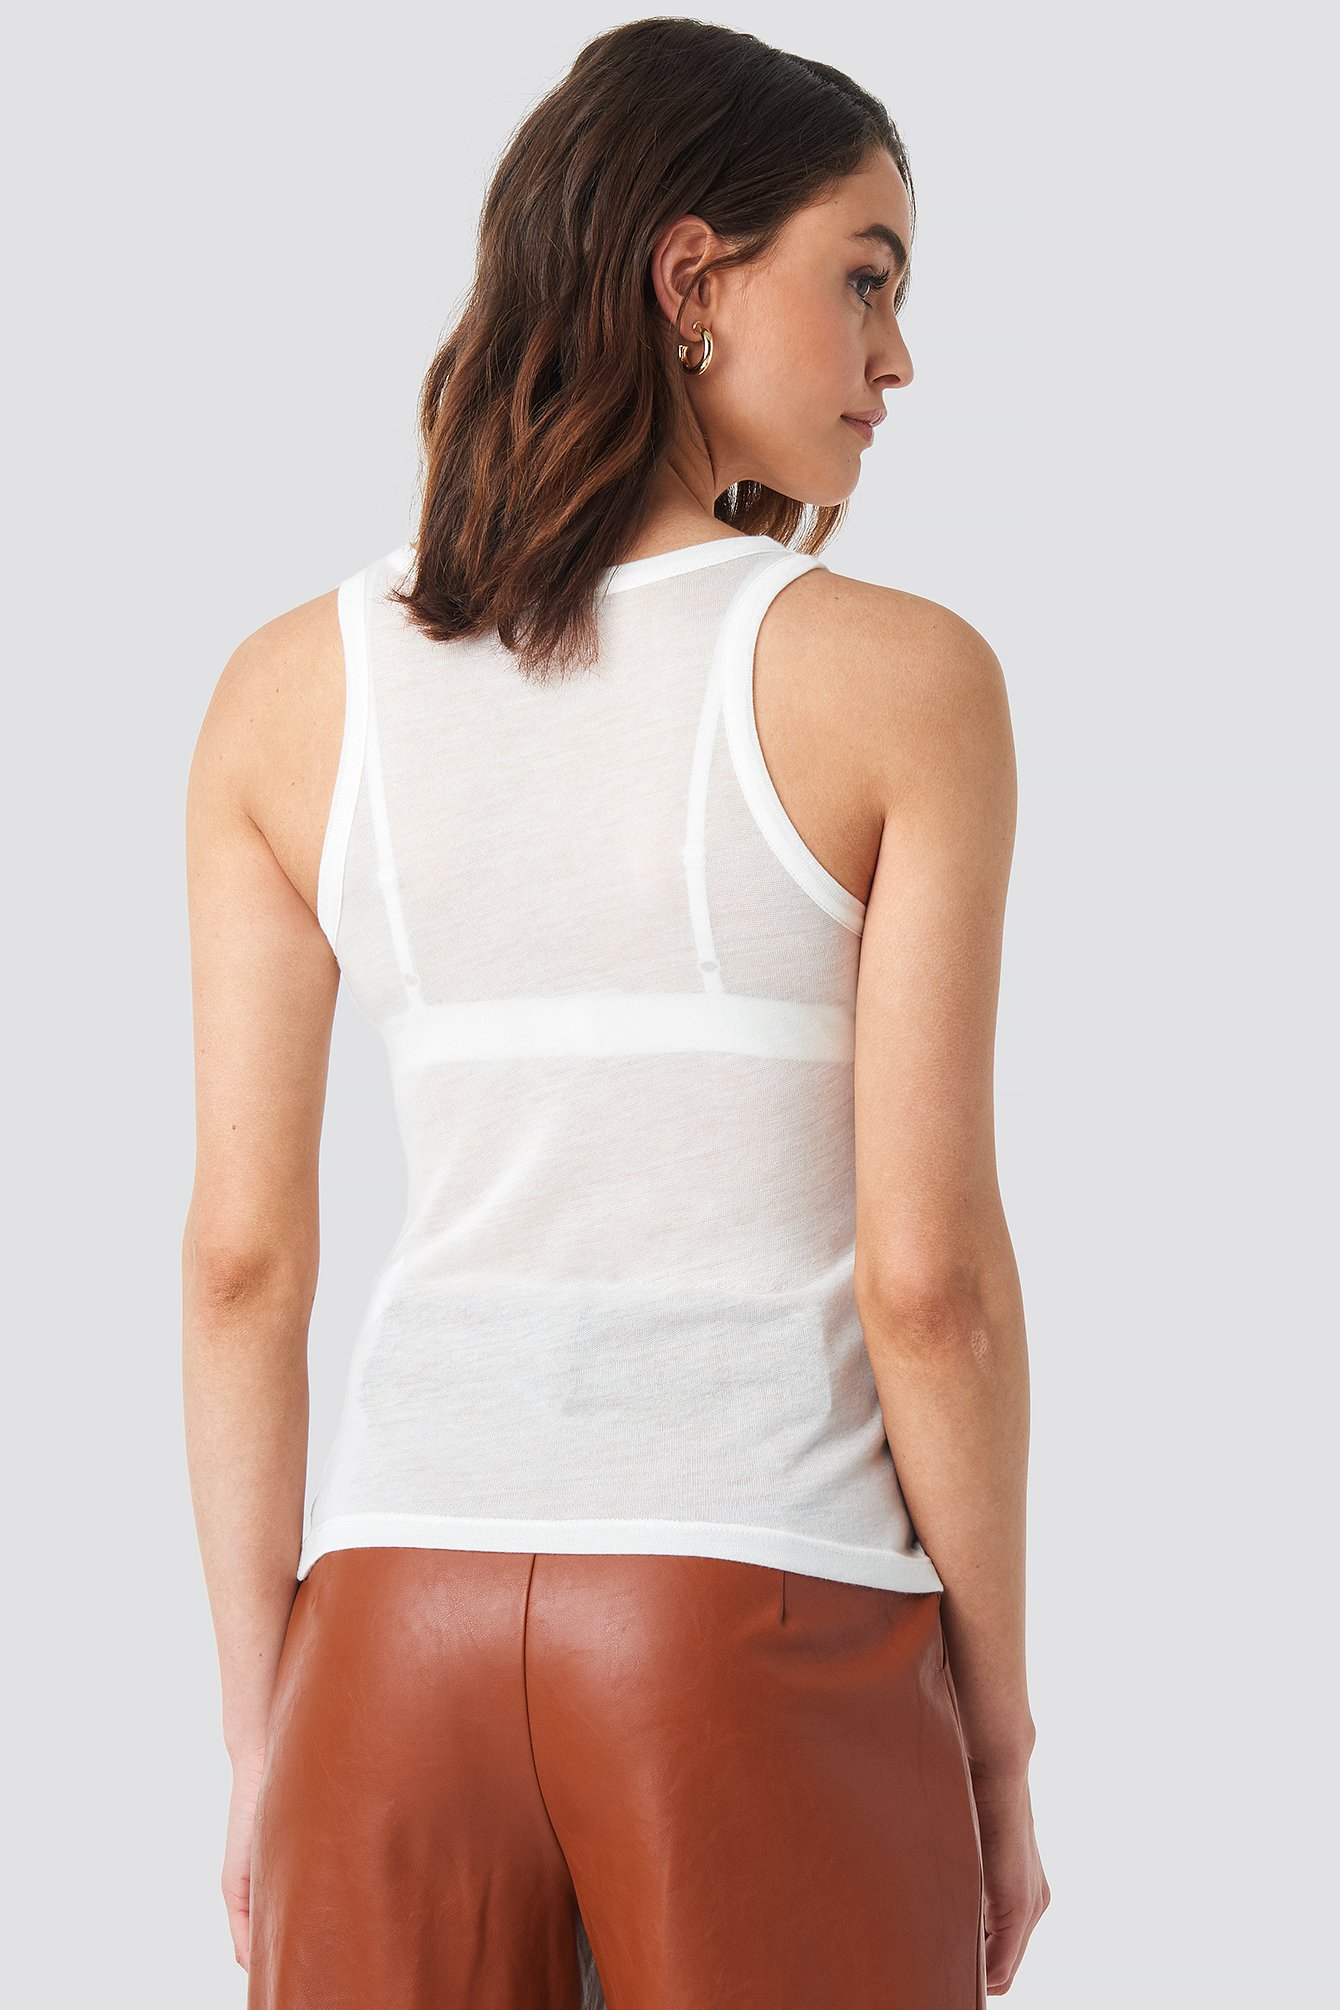 Offwhite Sheer Tank Top